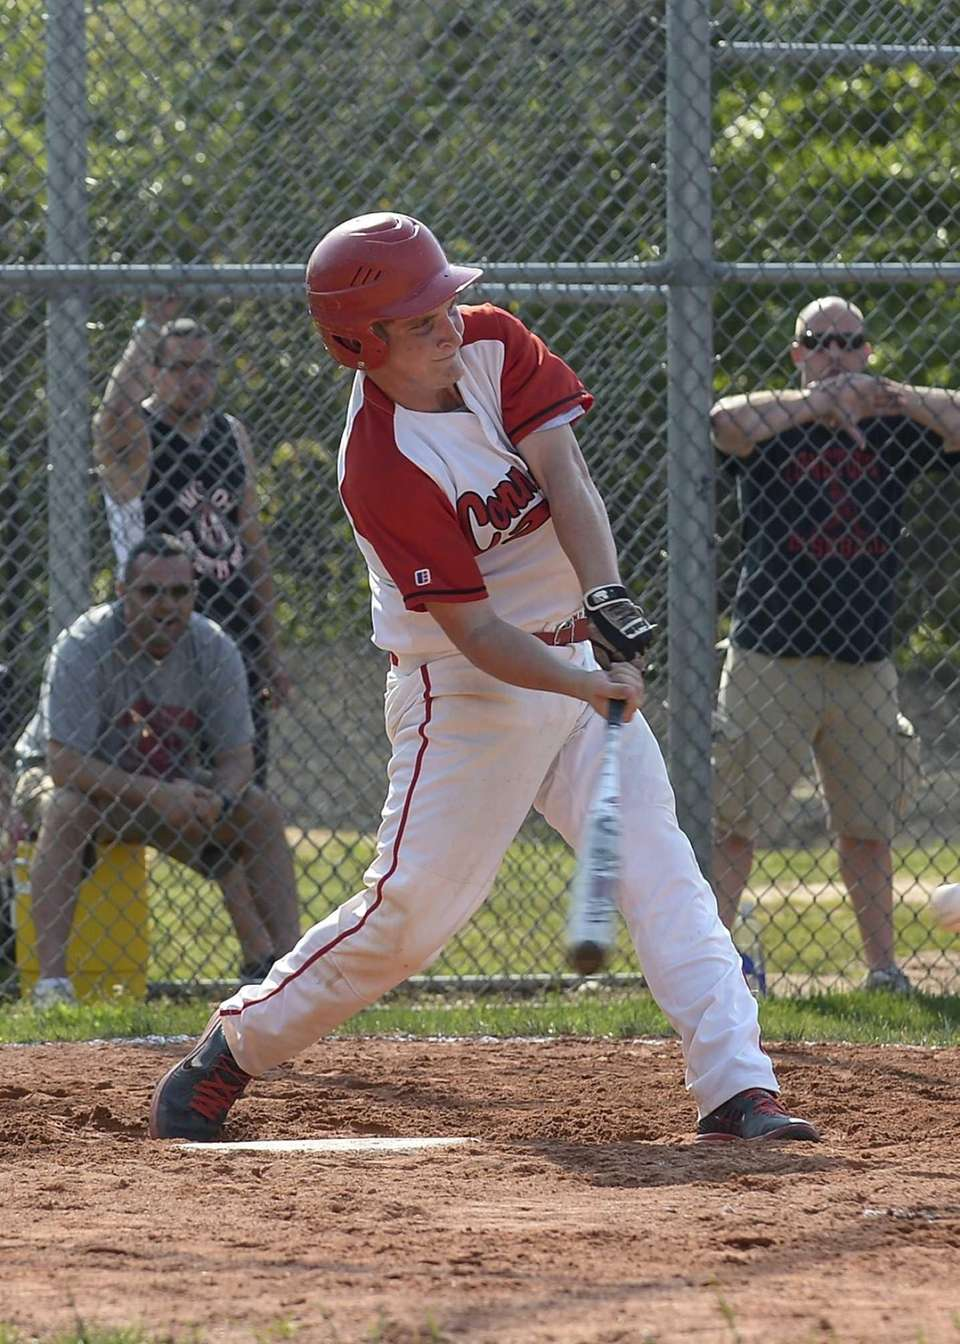 Connetquot's Tyler Torborg connects for a double during